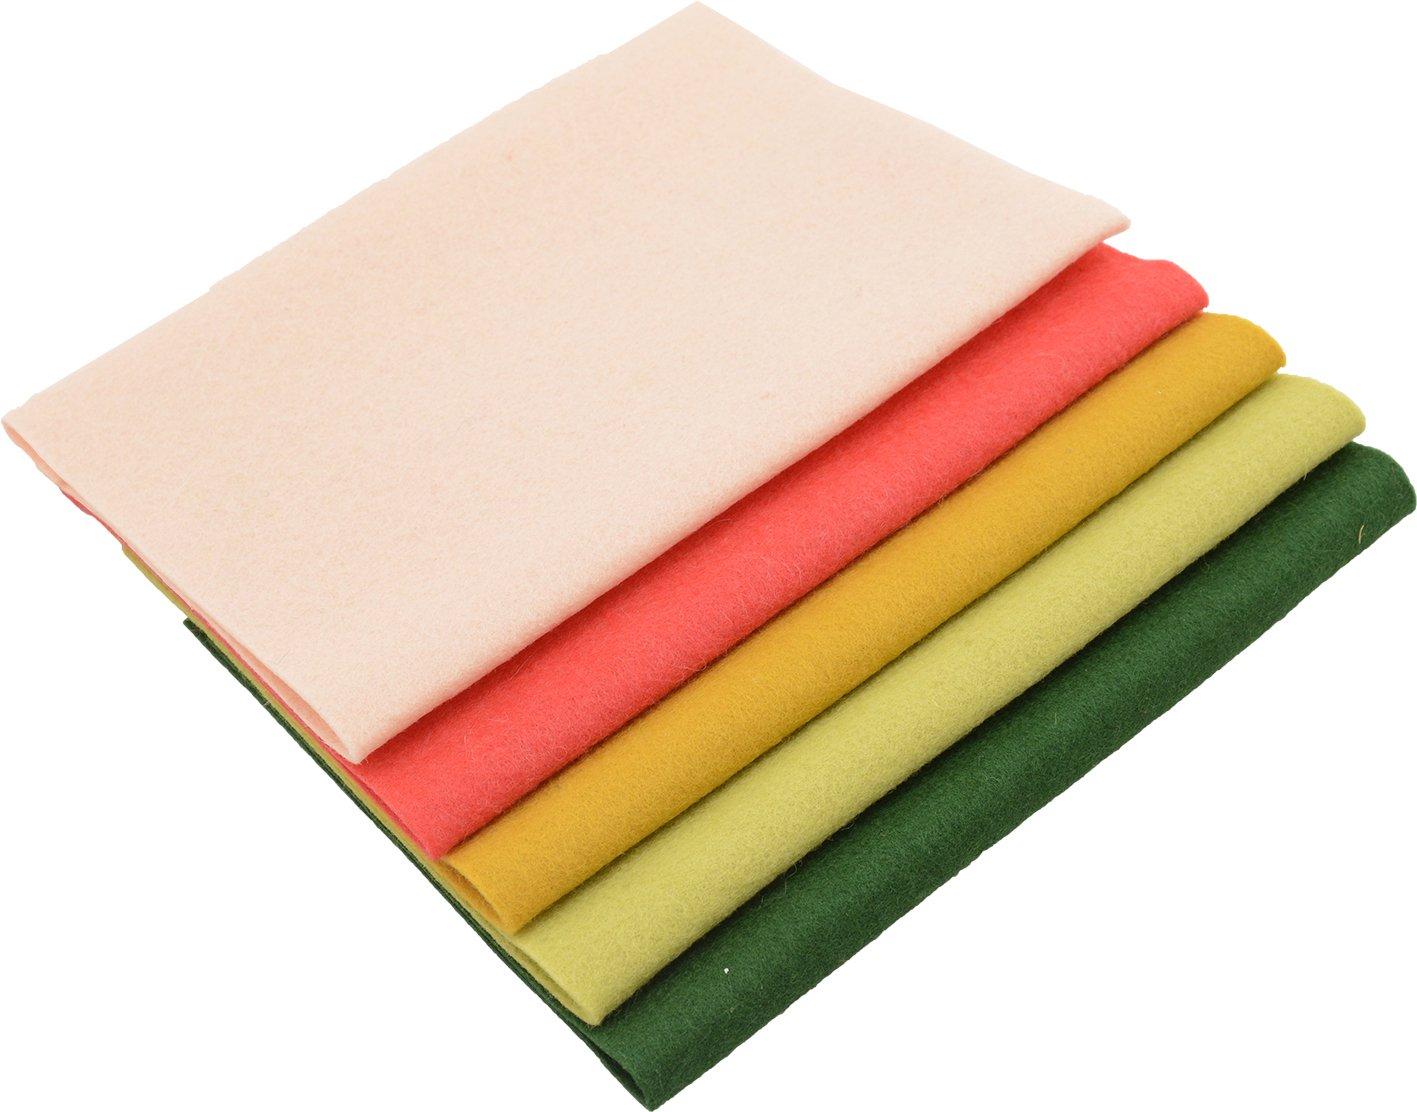 De Witte Engel Fashion 100 Percent Woollen Felt Pack, Multi-Colour, 28 x 25 x 2.5 cm VAS007